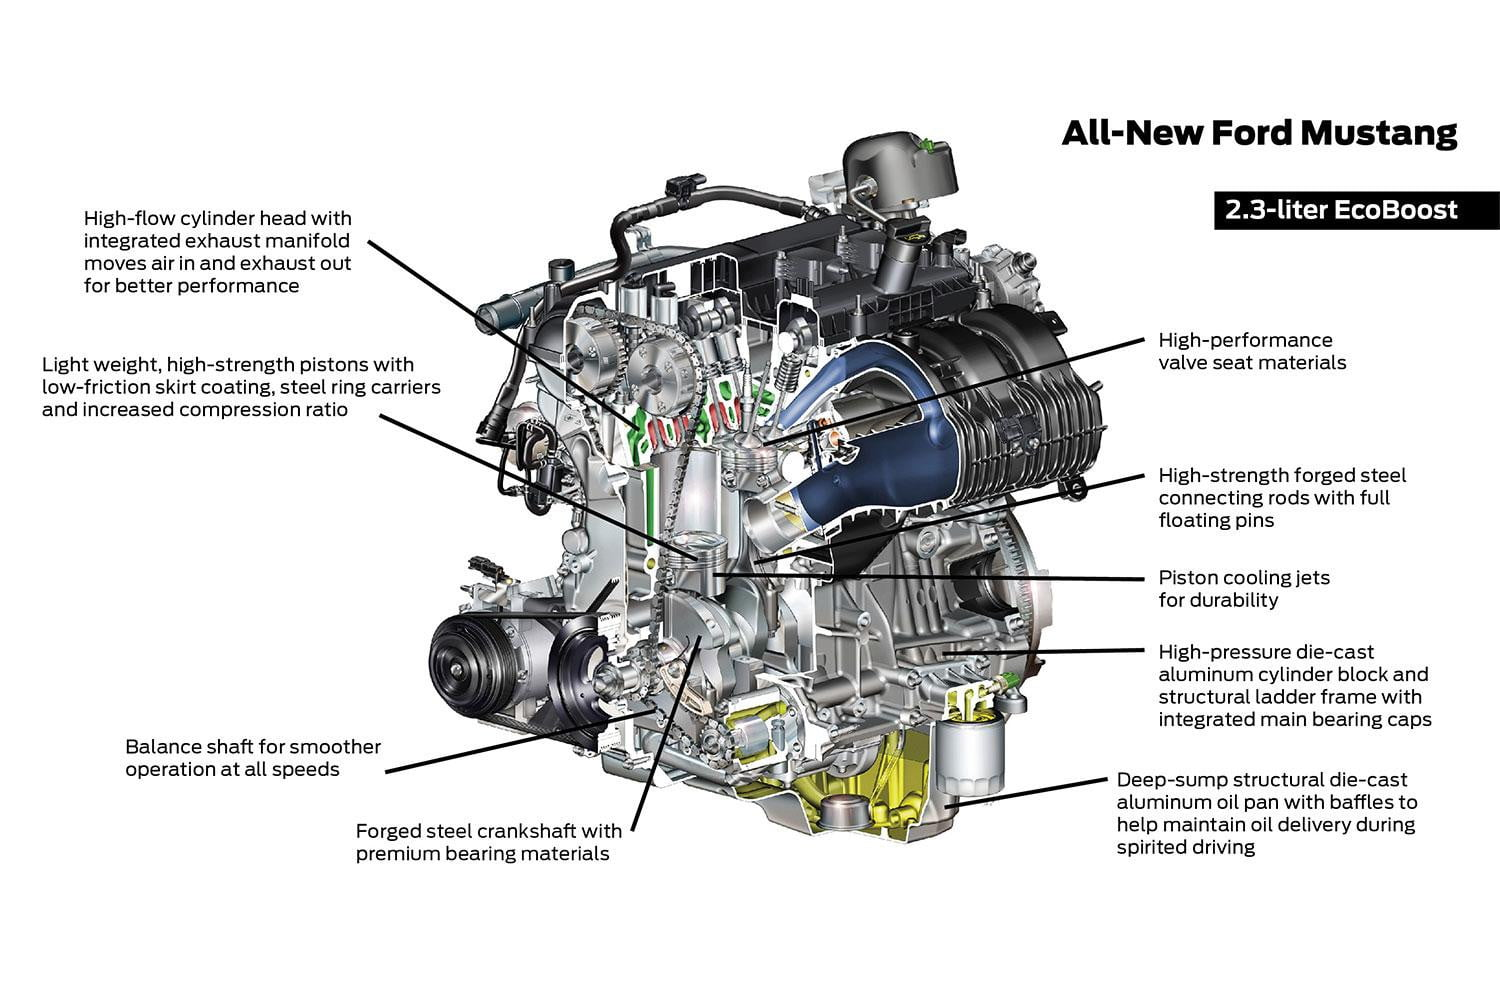 Ford Mustang Engine Specs And Rumors